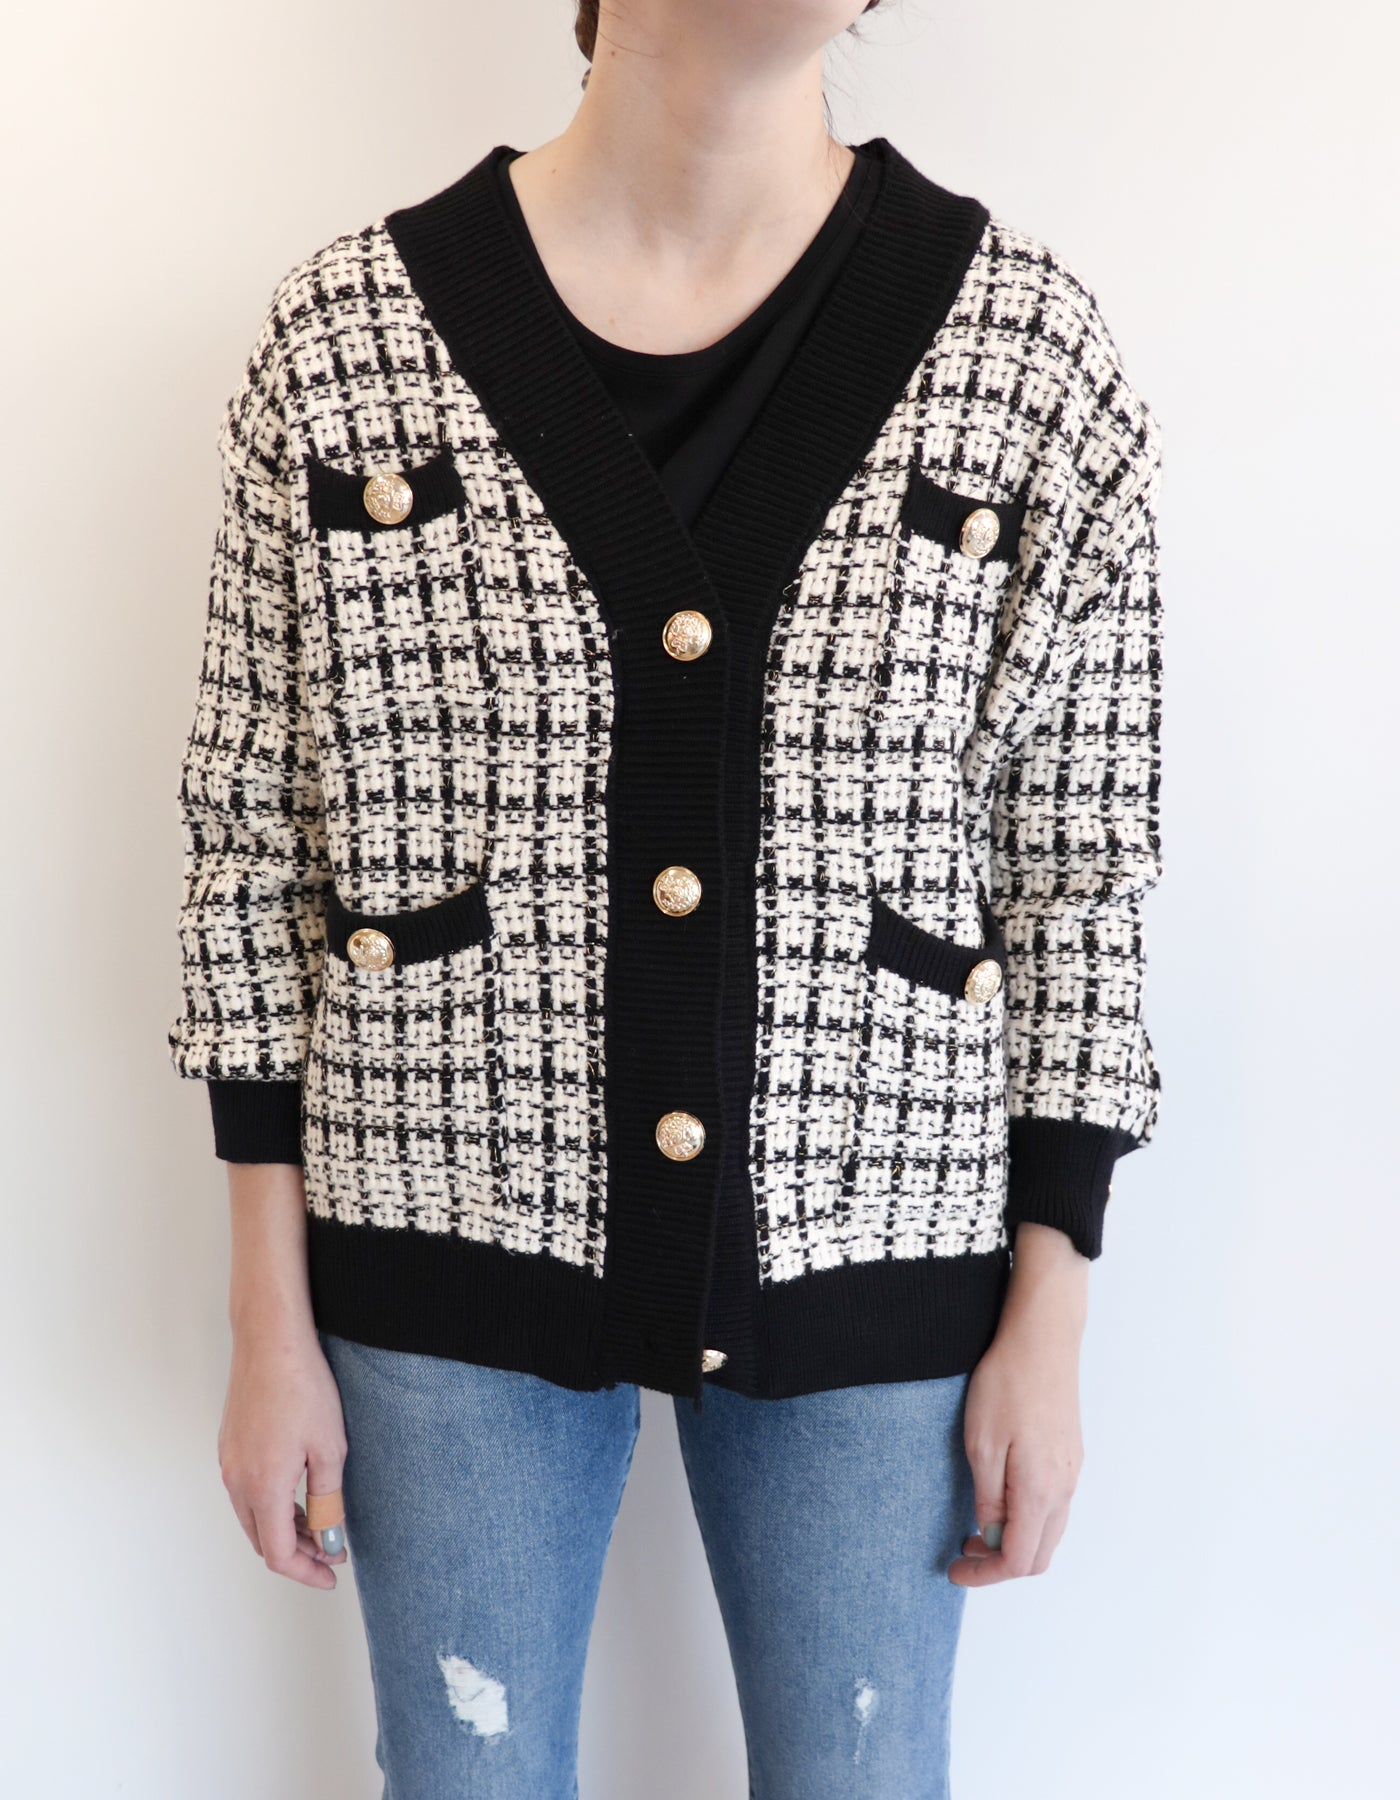 Coco Boyfriend Button-Up Sweater